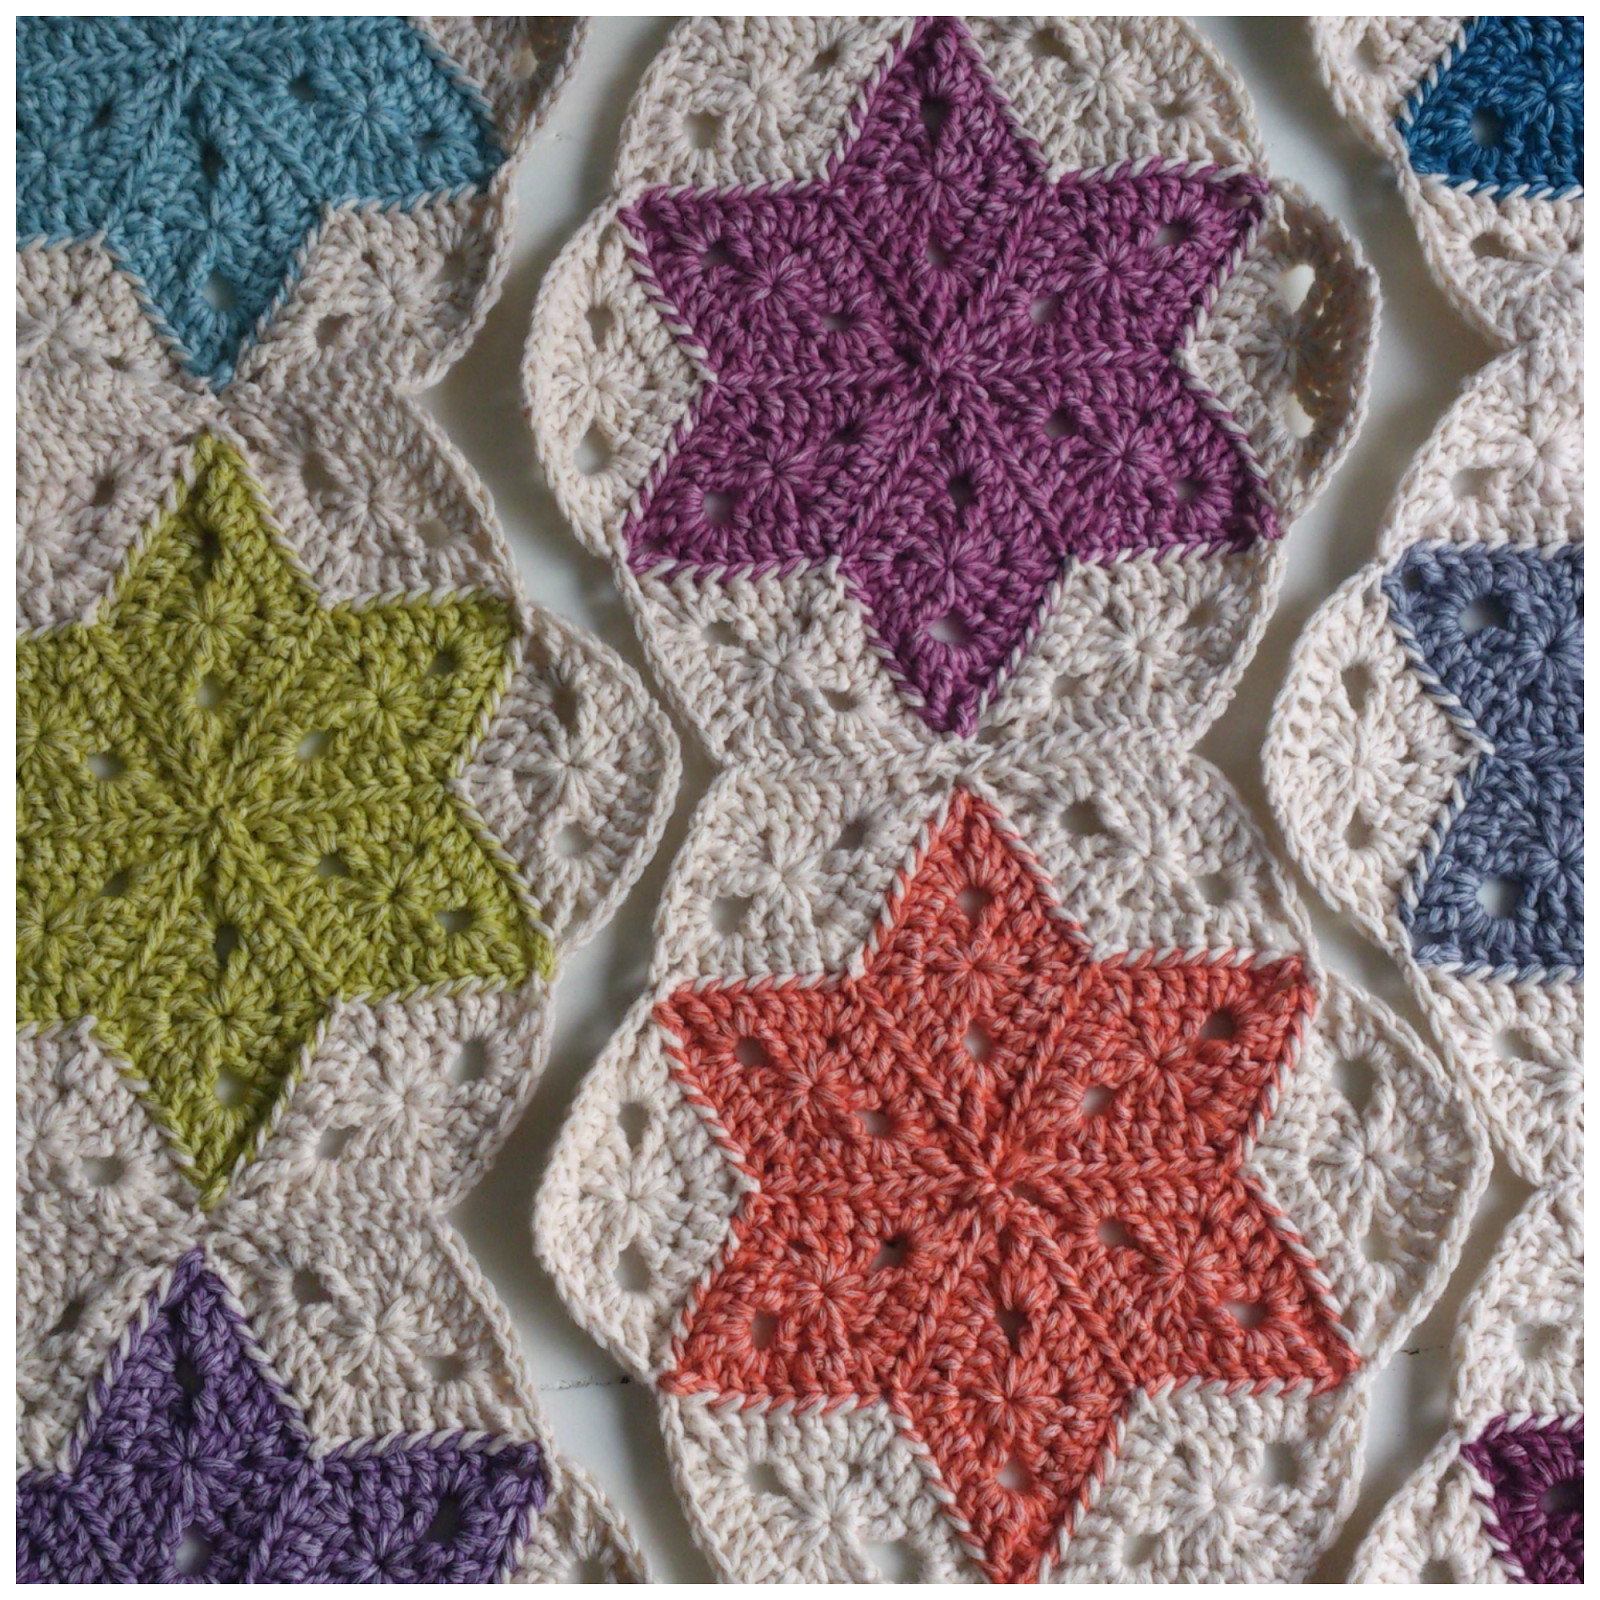 Star Blanket Crochet Pattern Best Of atty S Pattern Tutorial Star Blanket Of Adorable 46 Pictures Star Blanket Crochet Pattern